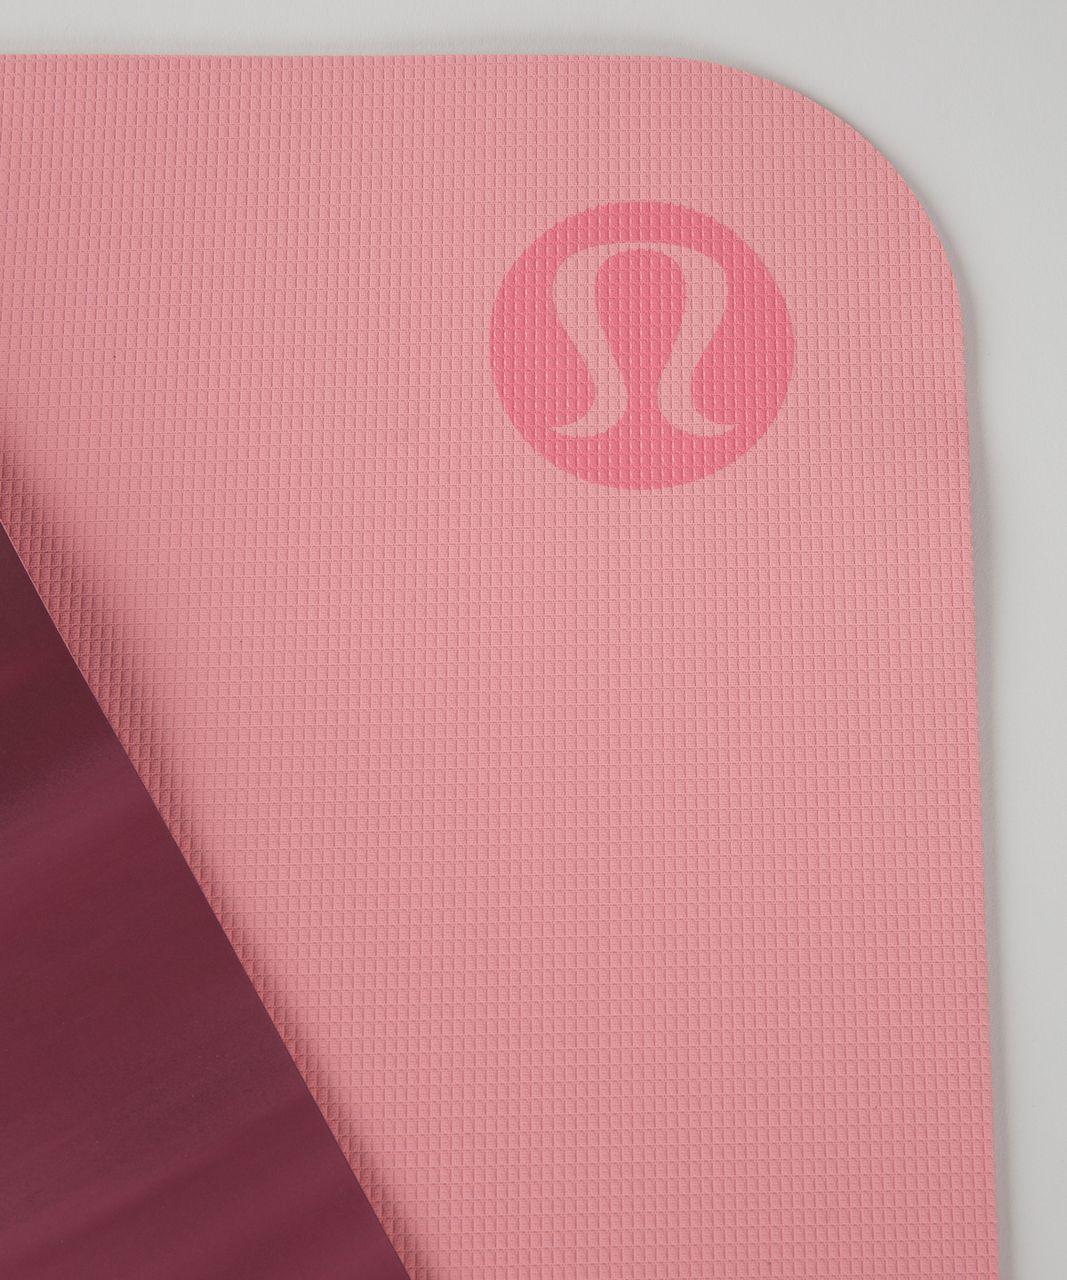 Lululemon The Reversible Mat 3mm - Rosewood / White / Yum Yum Pink